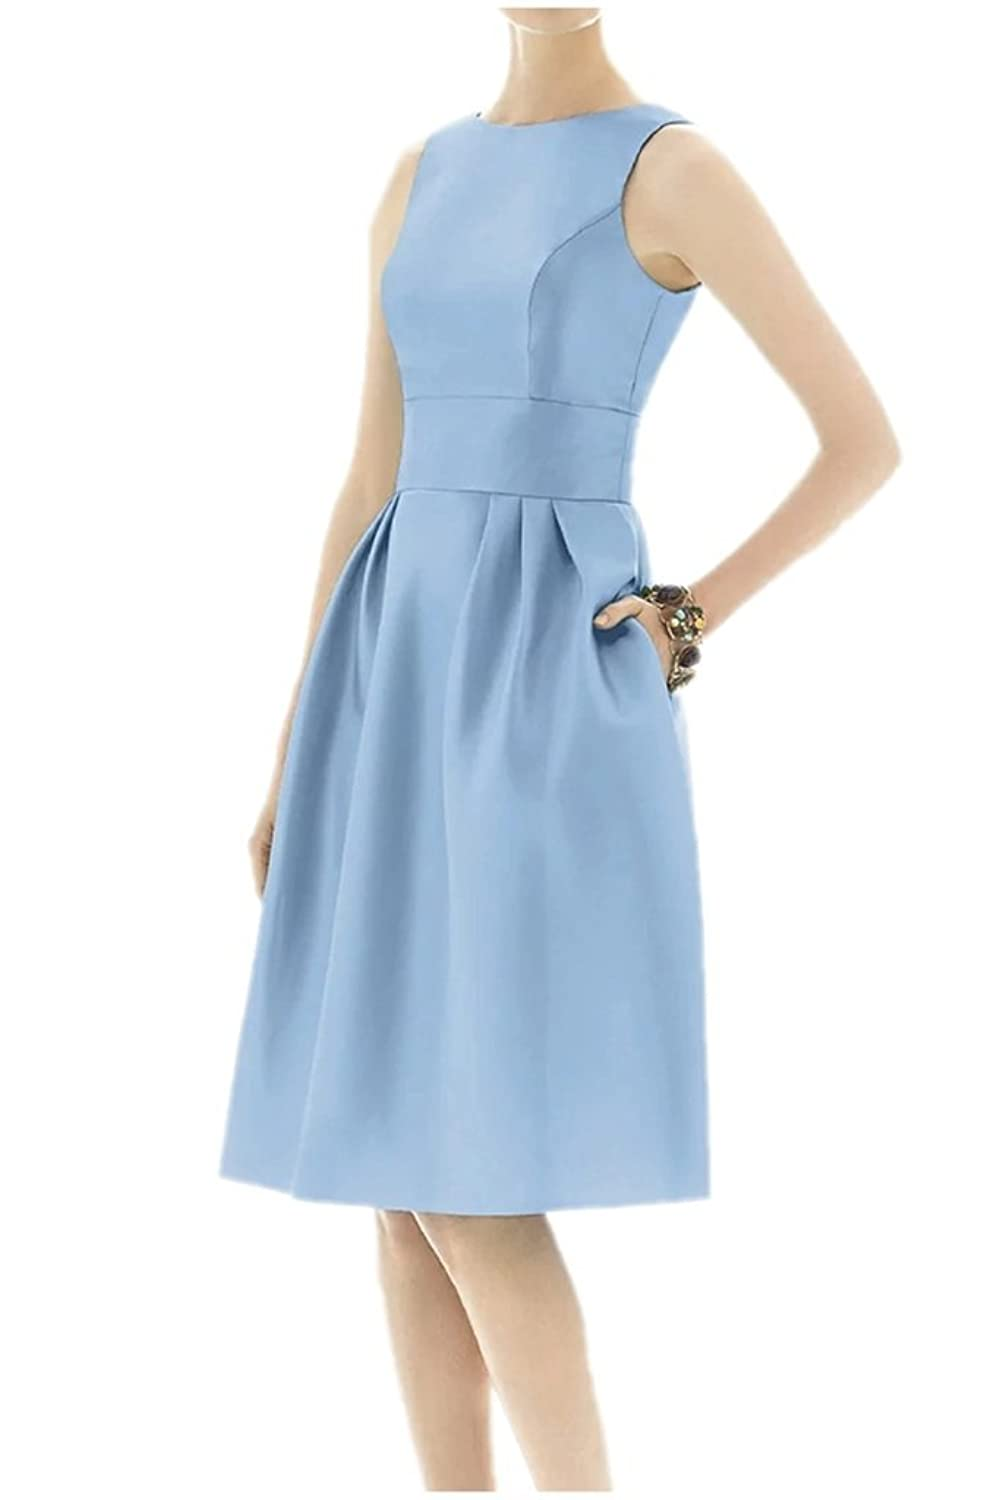 Charm Bridal Short Solid Blue Brief Women Satin Formal Party Dress with Pockets